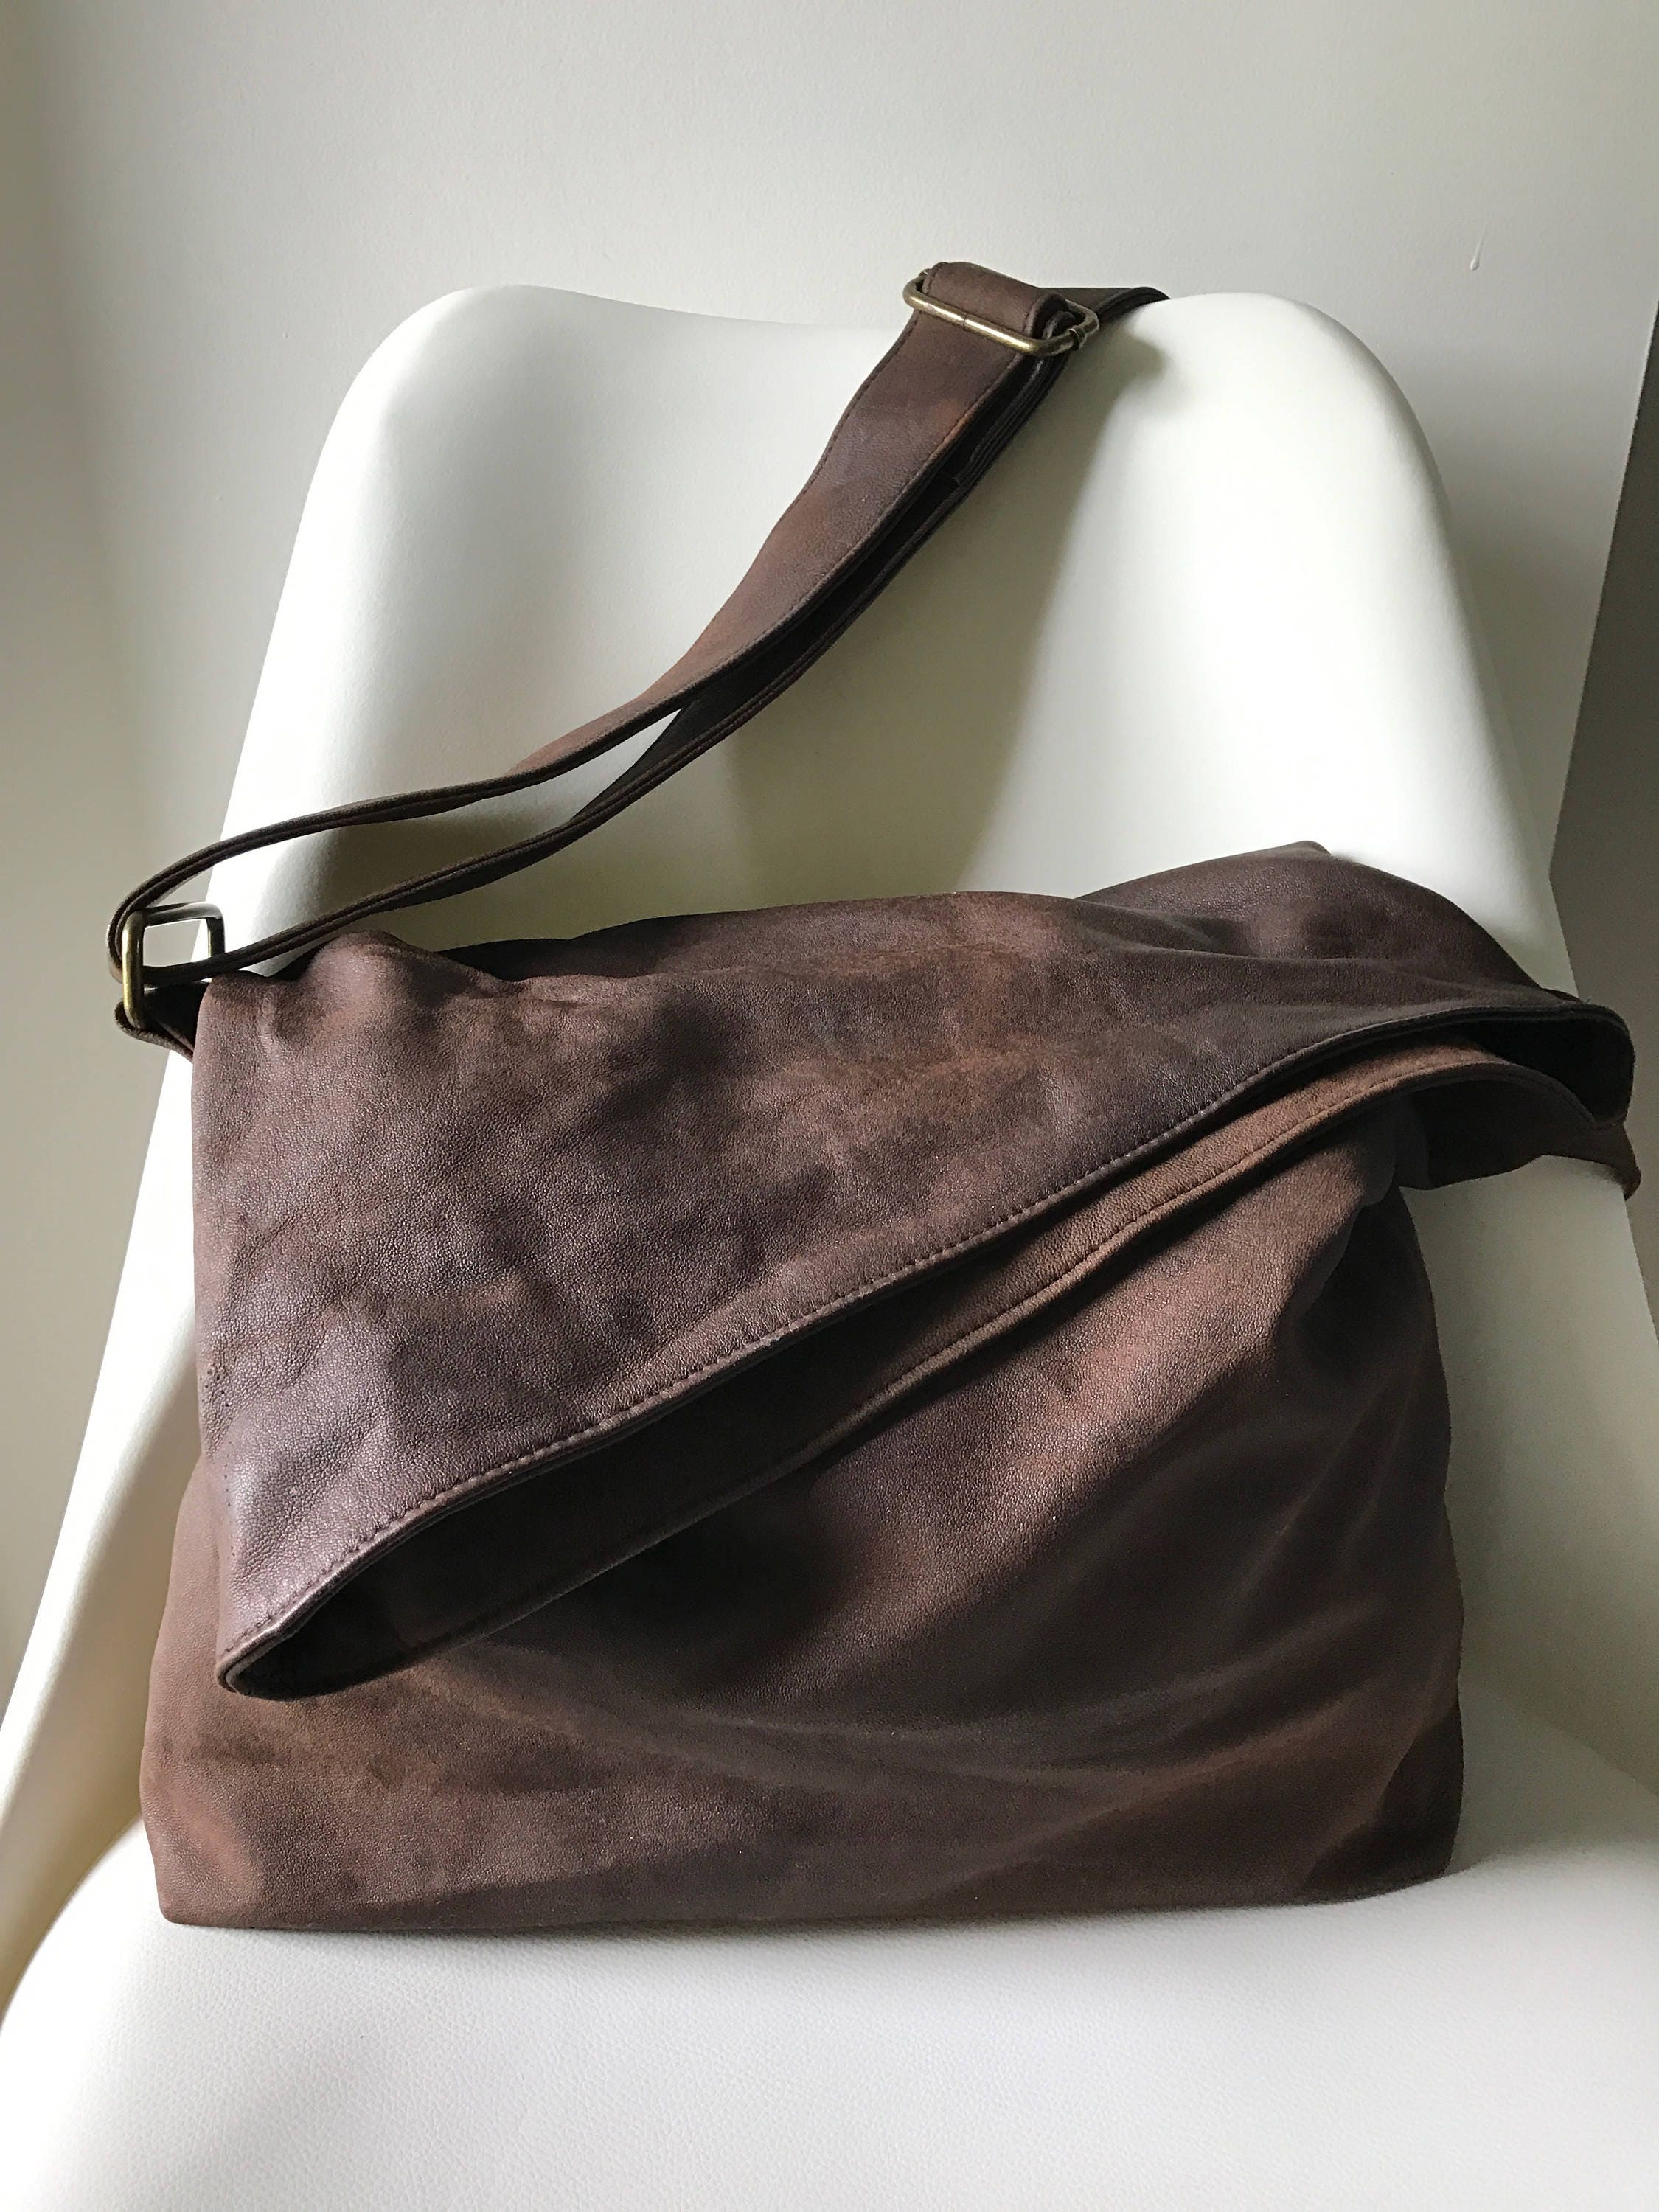 8ee765c061 ... soft leather cross body bag Folding flap over the top with opening  Unique with thick long cross body adjustable strap with slider. gallery  photo gallery ...